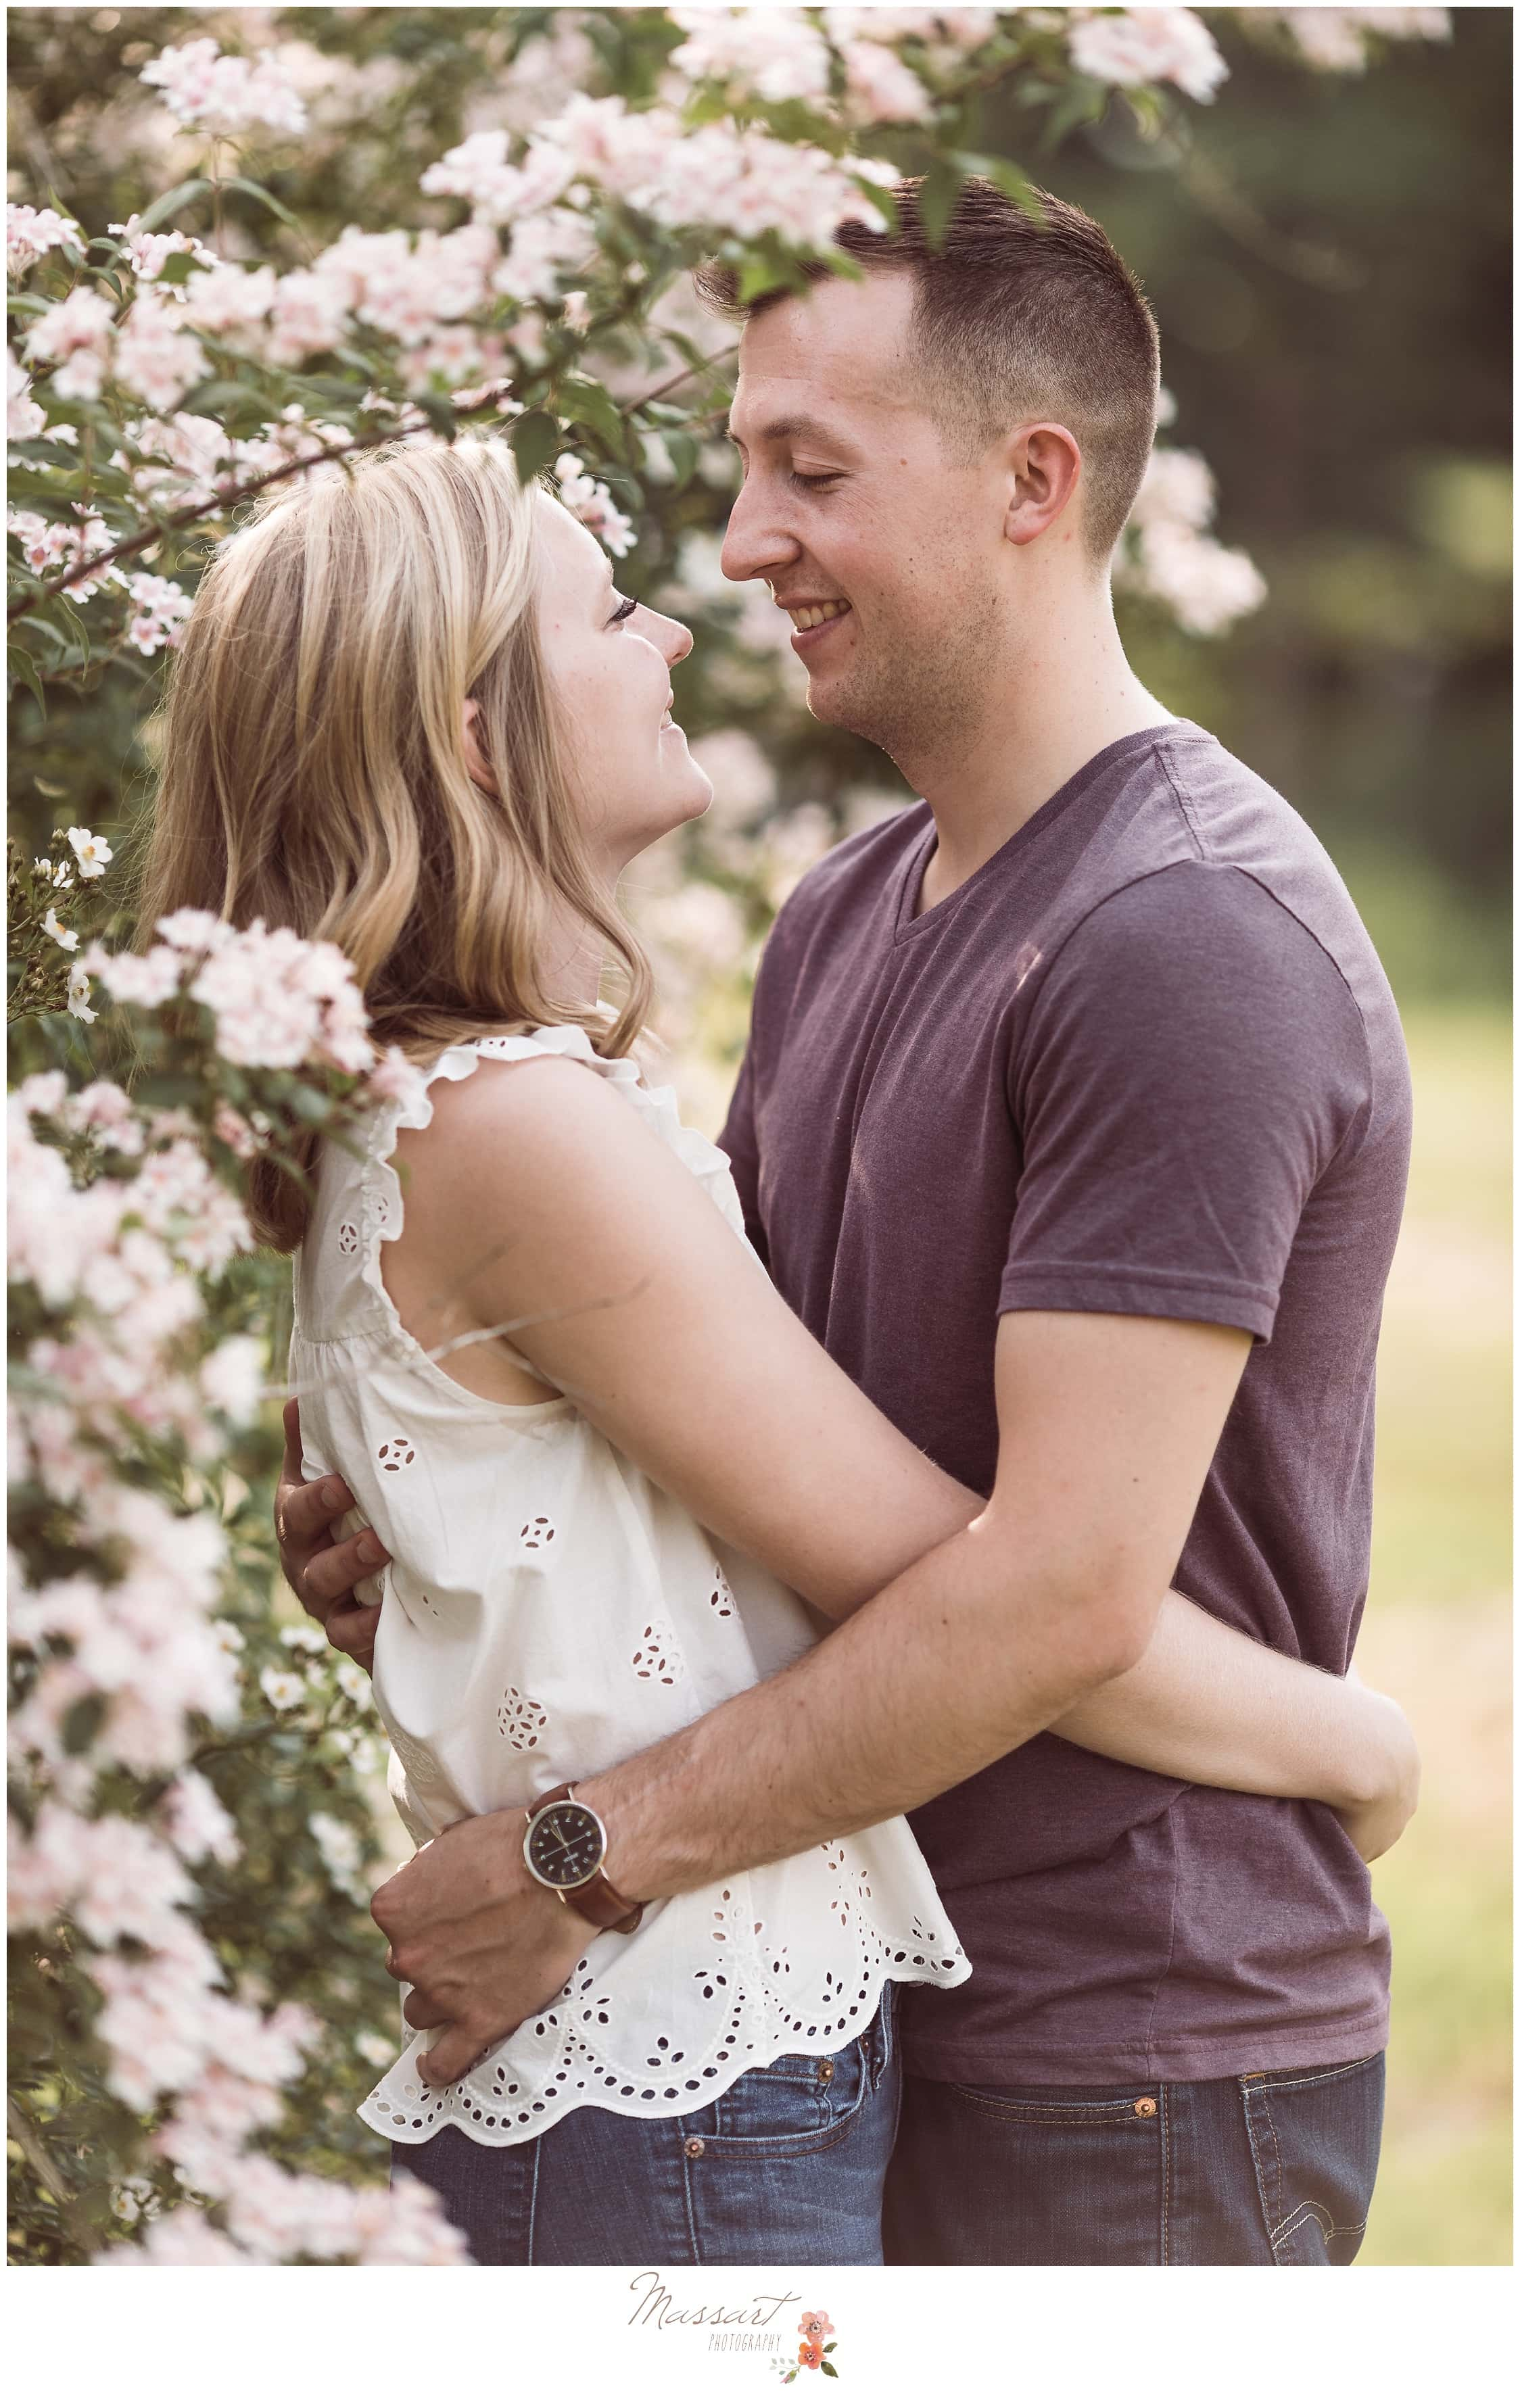 Couple stands near beautiful pink flowers during their engagement session photographed by Massart Photography of Warwick, RI